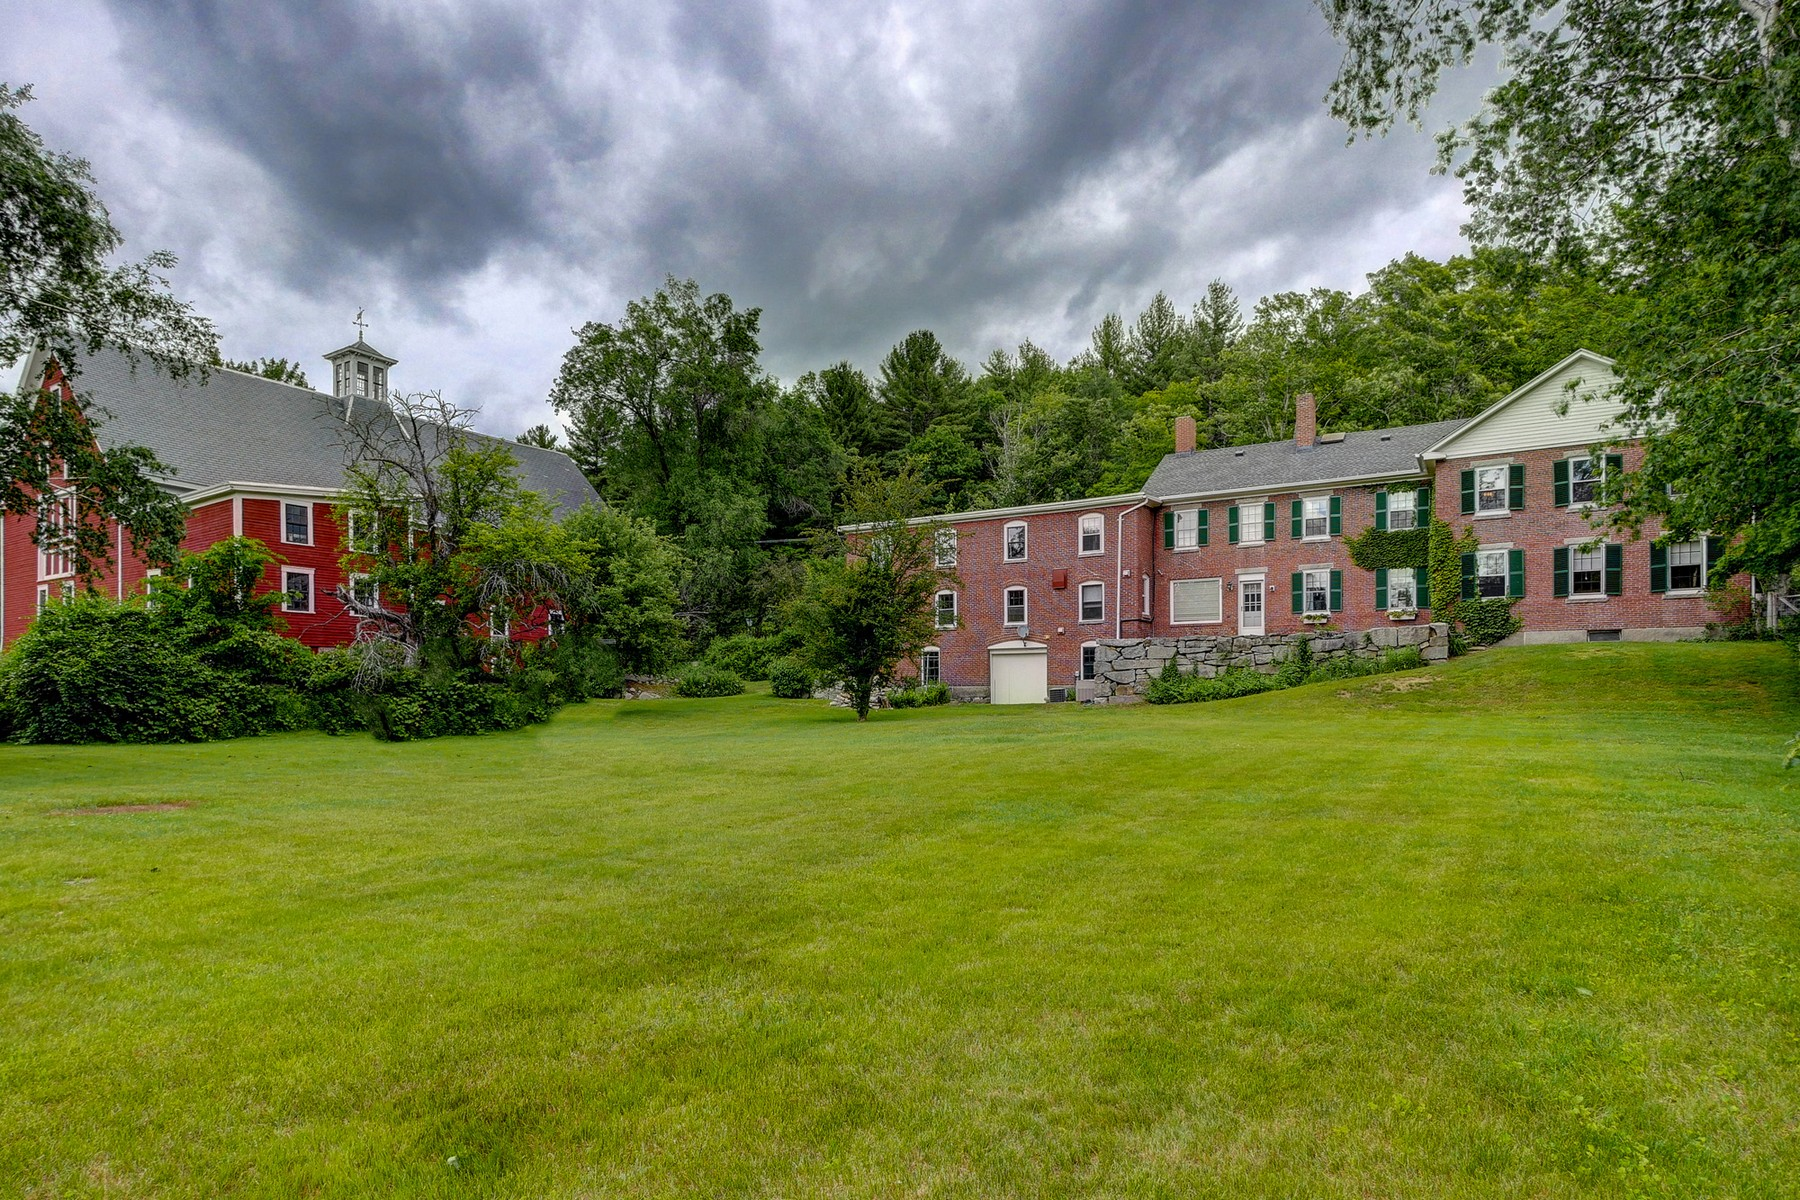 Single Family Home for Sale at 147 Nashua Rd, Bedford Bedford, New Hampshire, 03110 United States